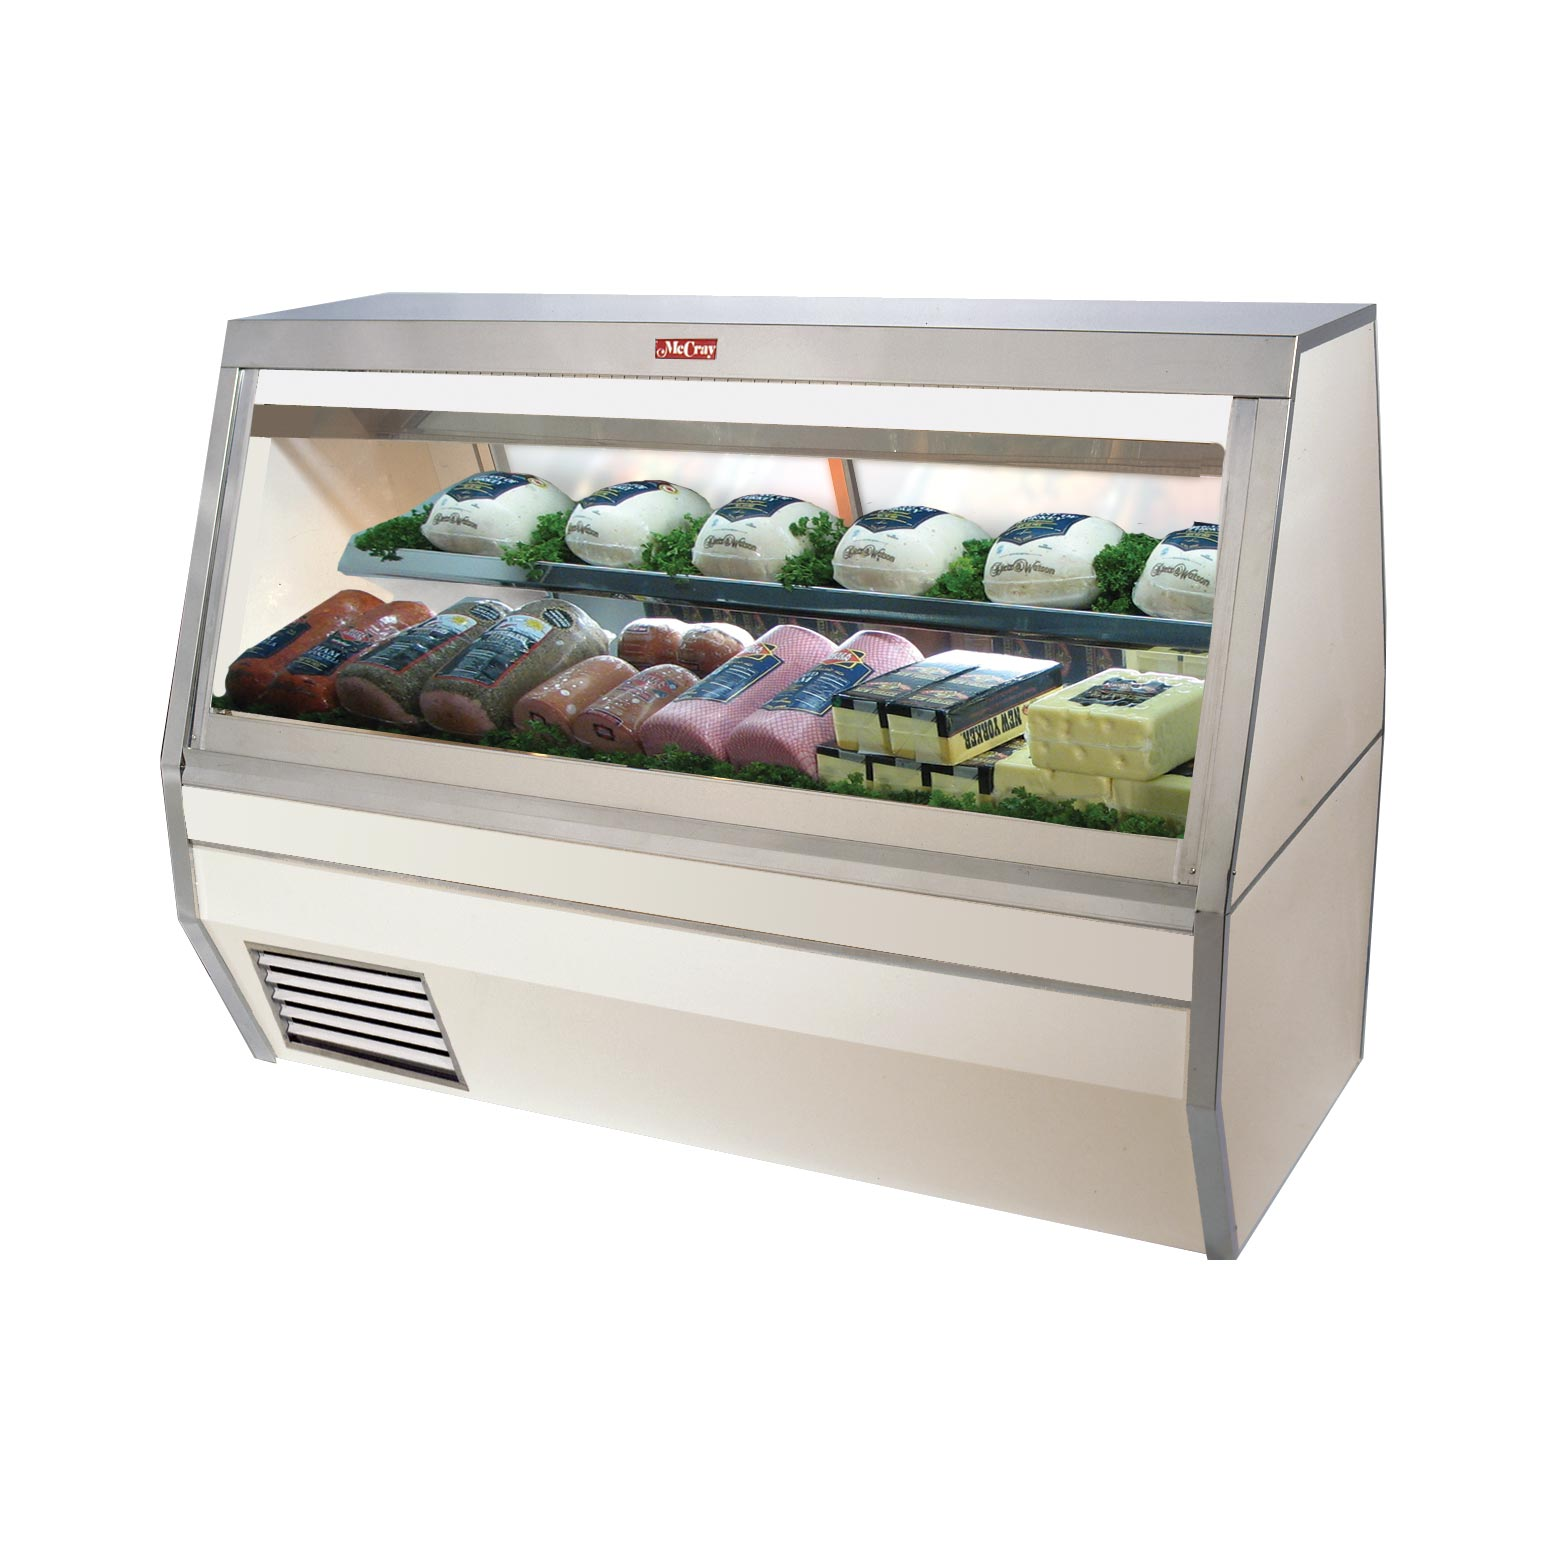 Howard-McCray SC-CDS35-10-LED display case, refrigerated deli